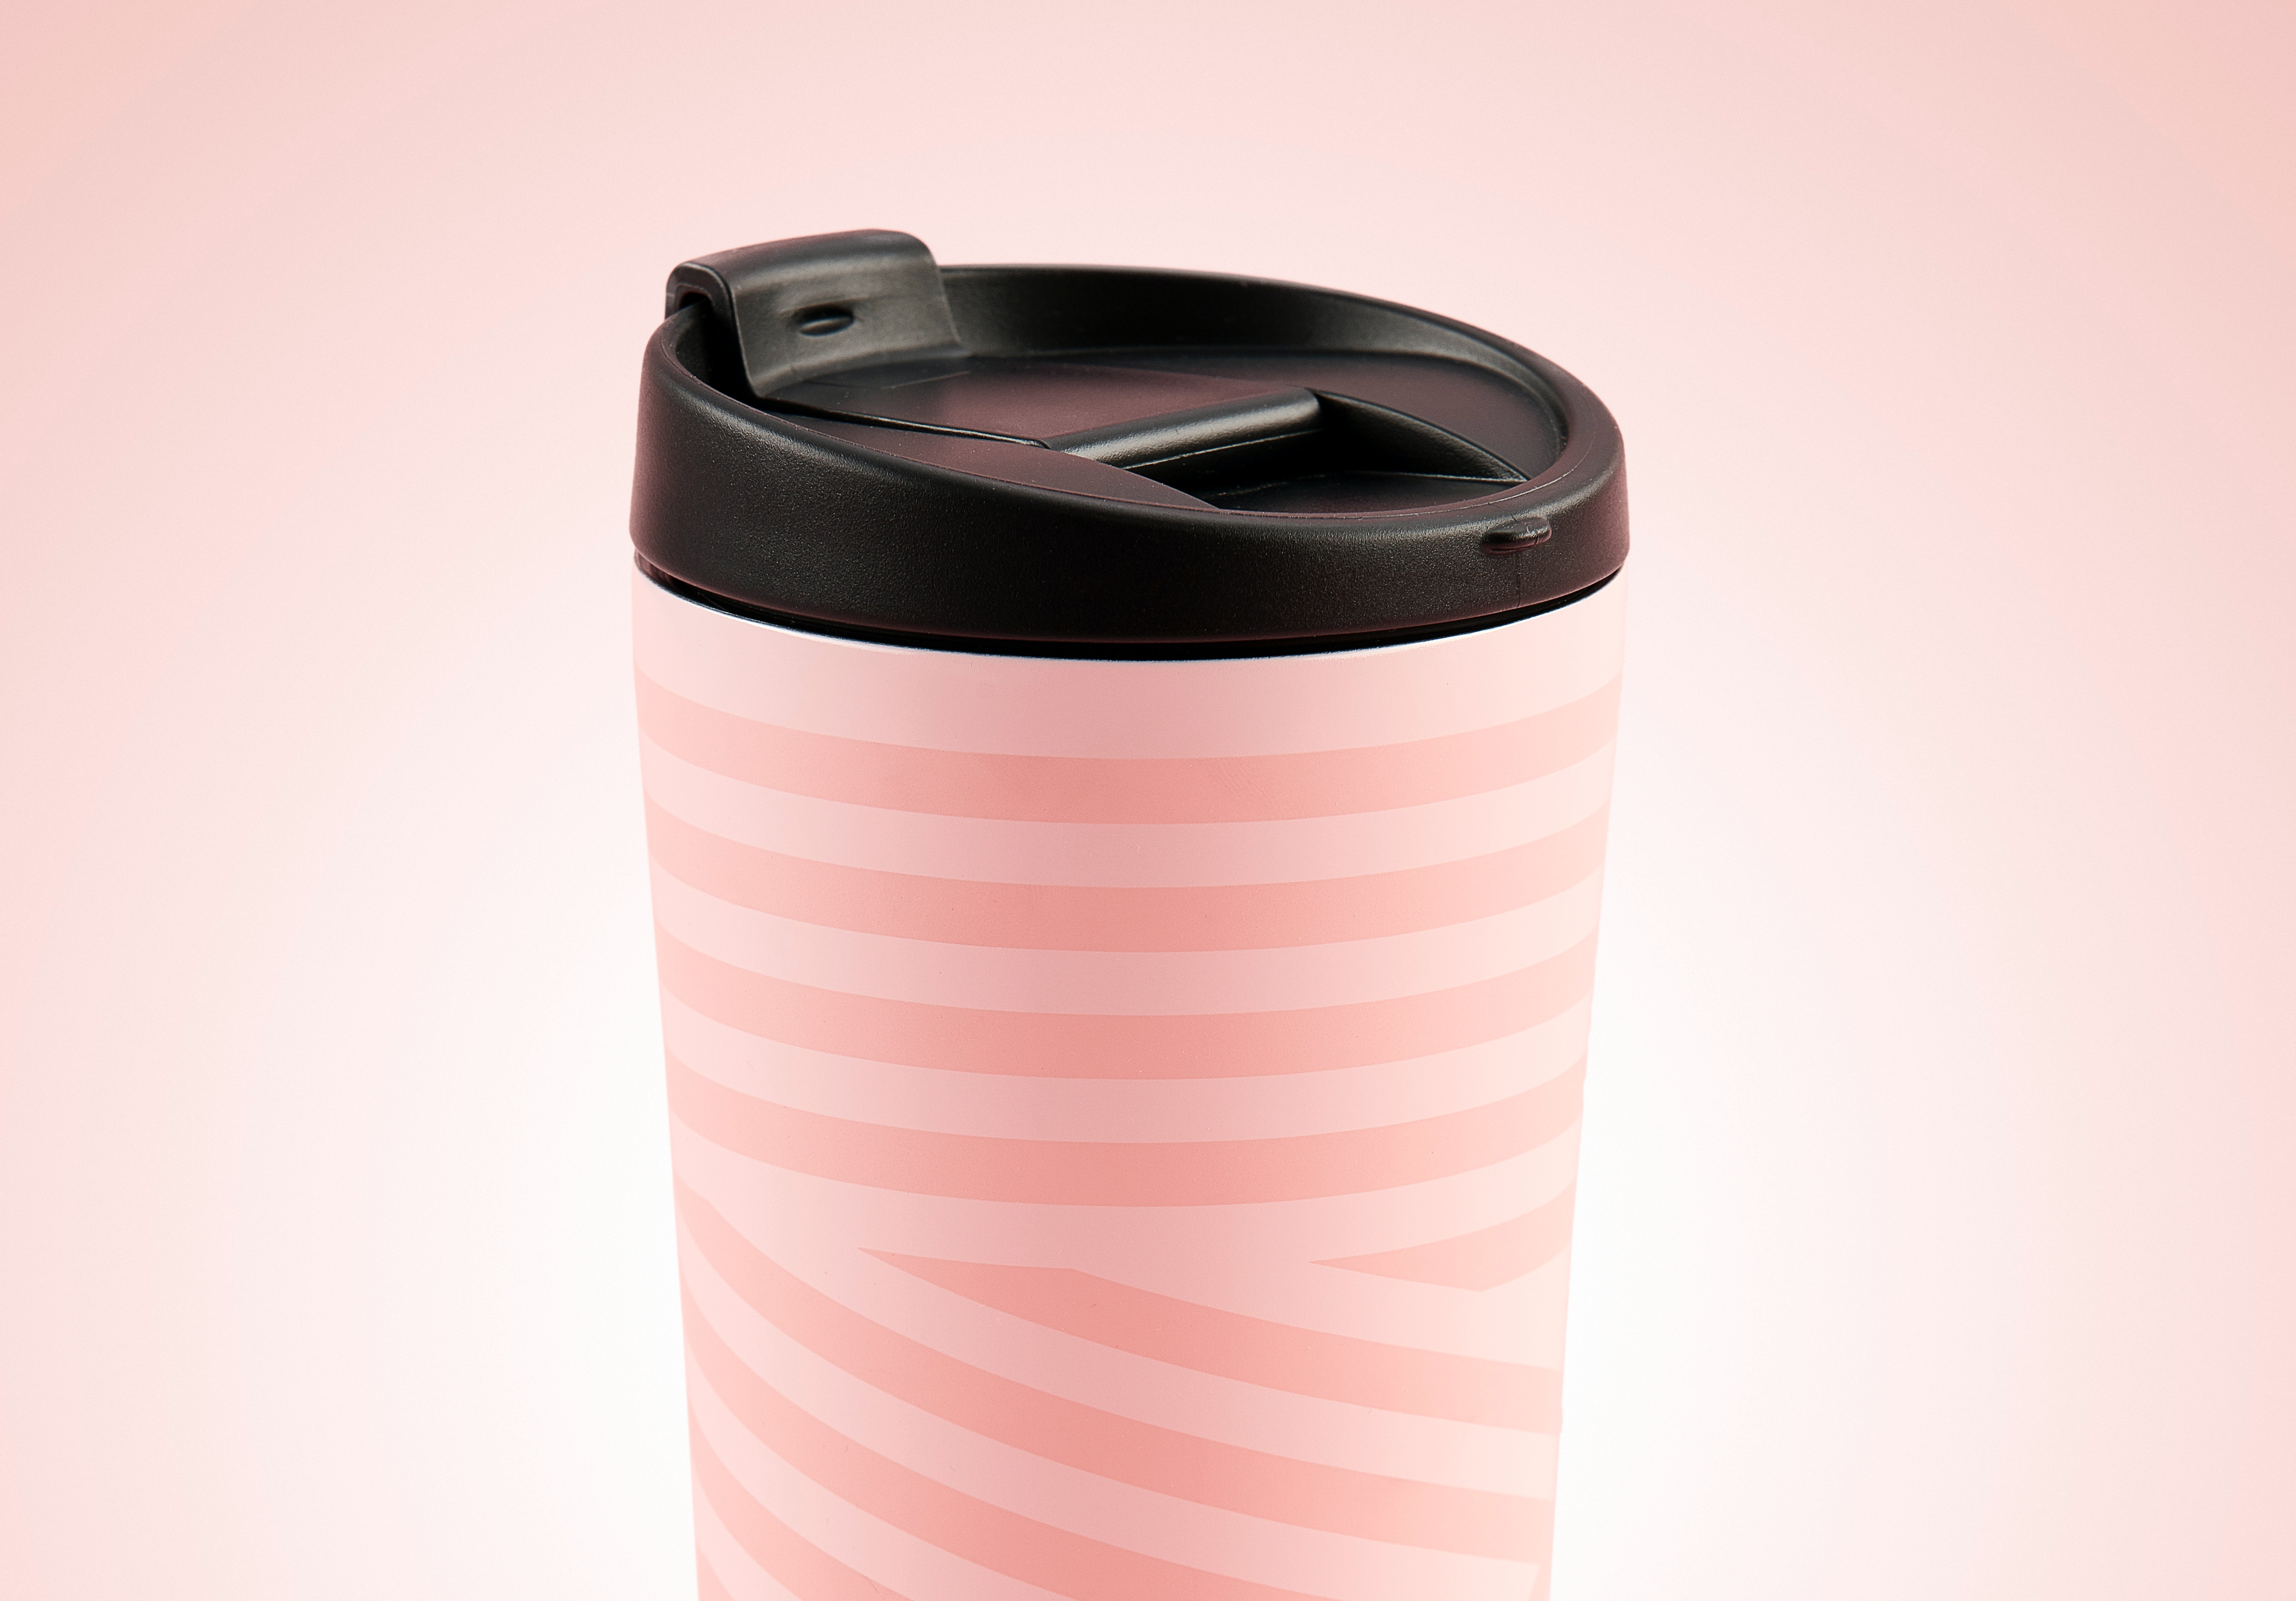 29ae9efaf1c Starbucks' Millennial Pink Spring Tumblers Are Here & They're So Cute